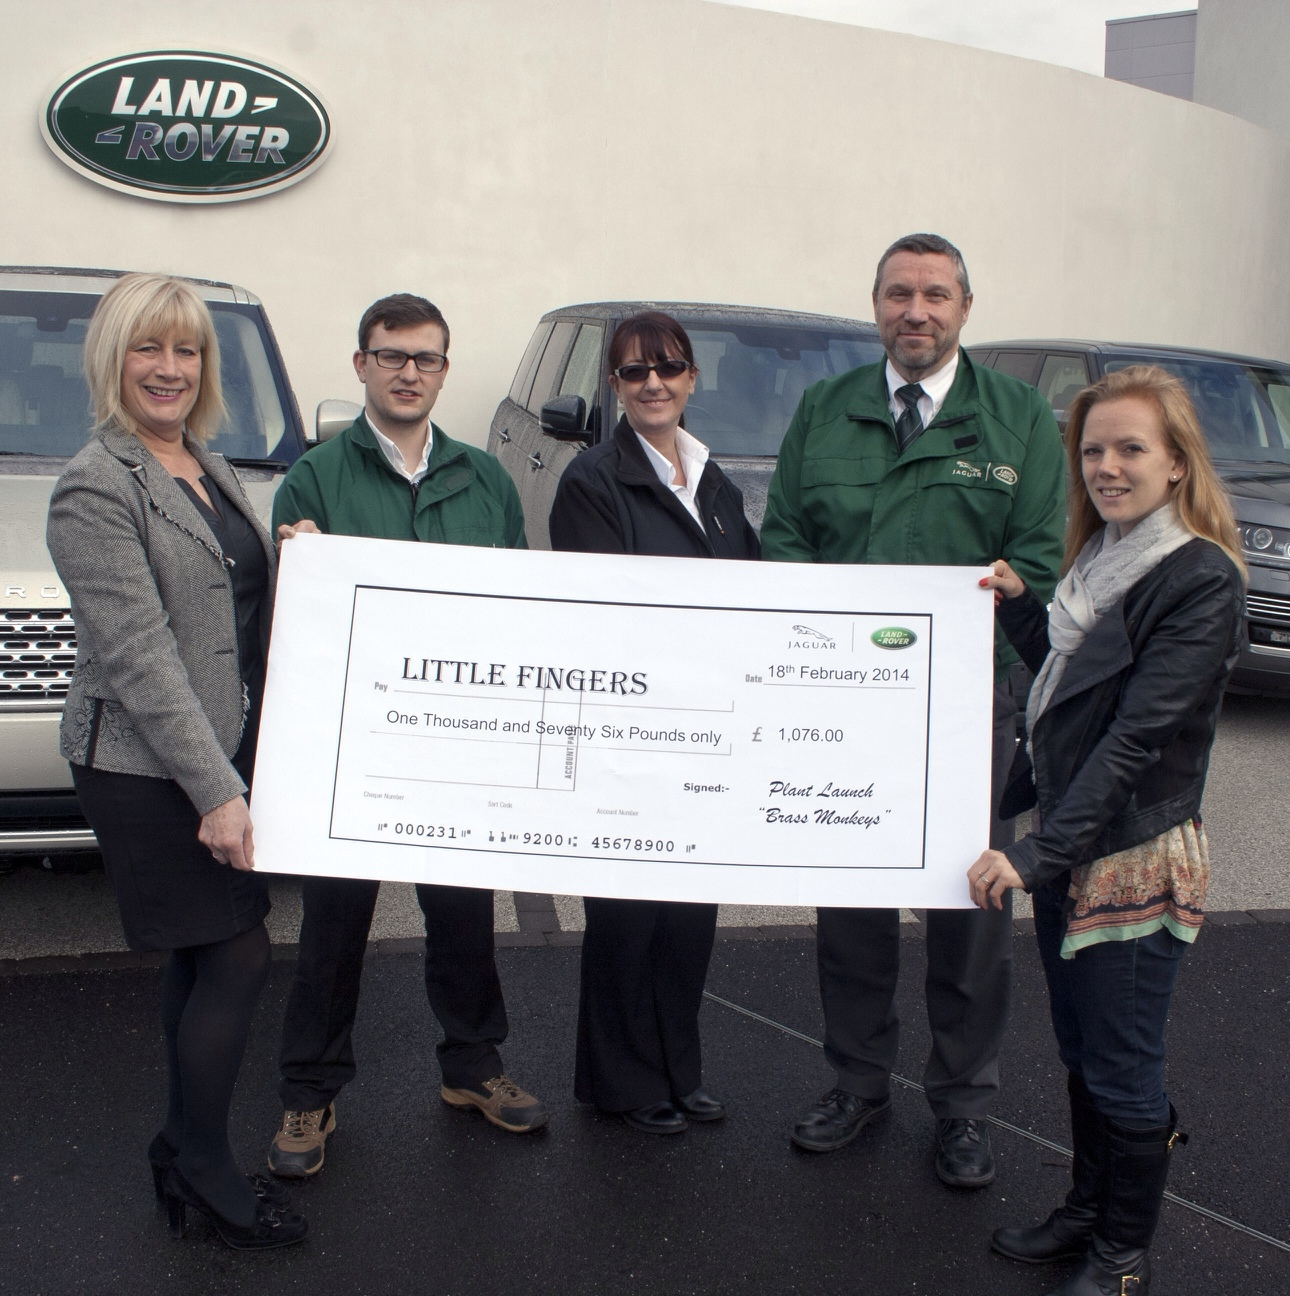 Picture of Land Rover Fund Raiser for little fingers